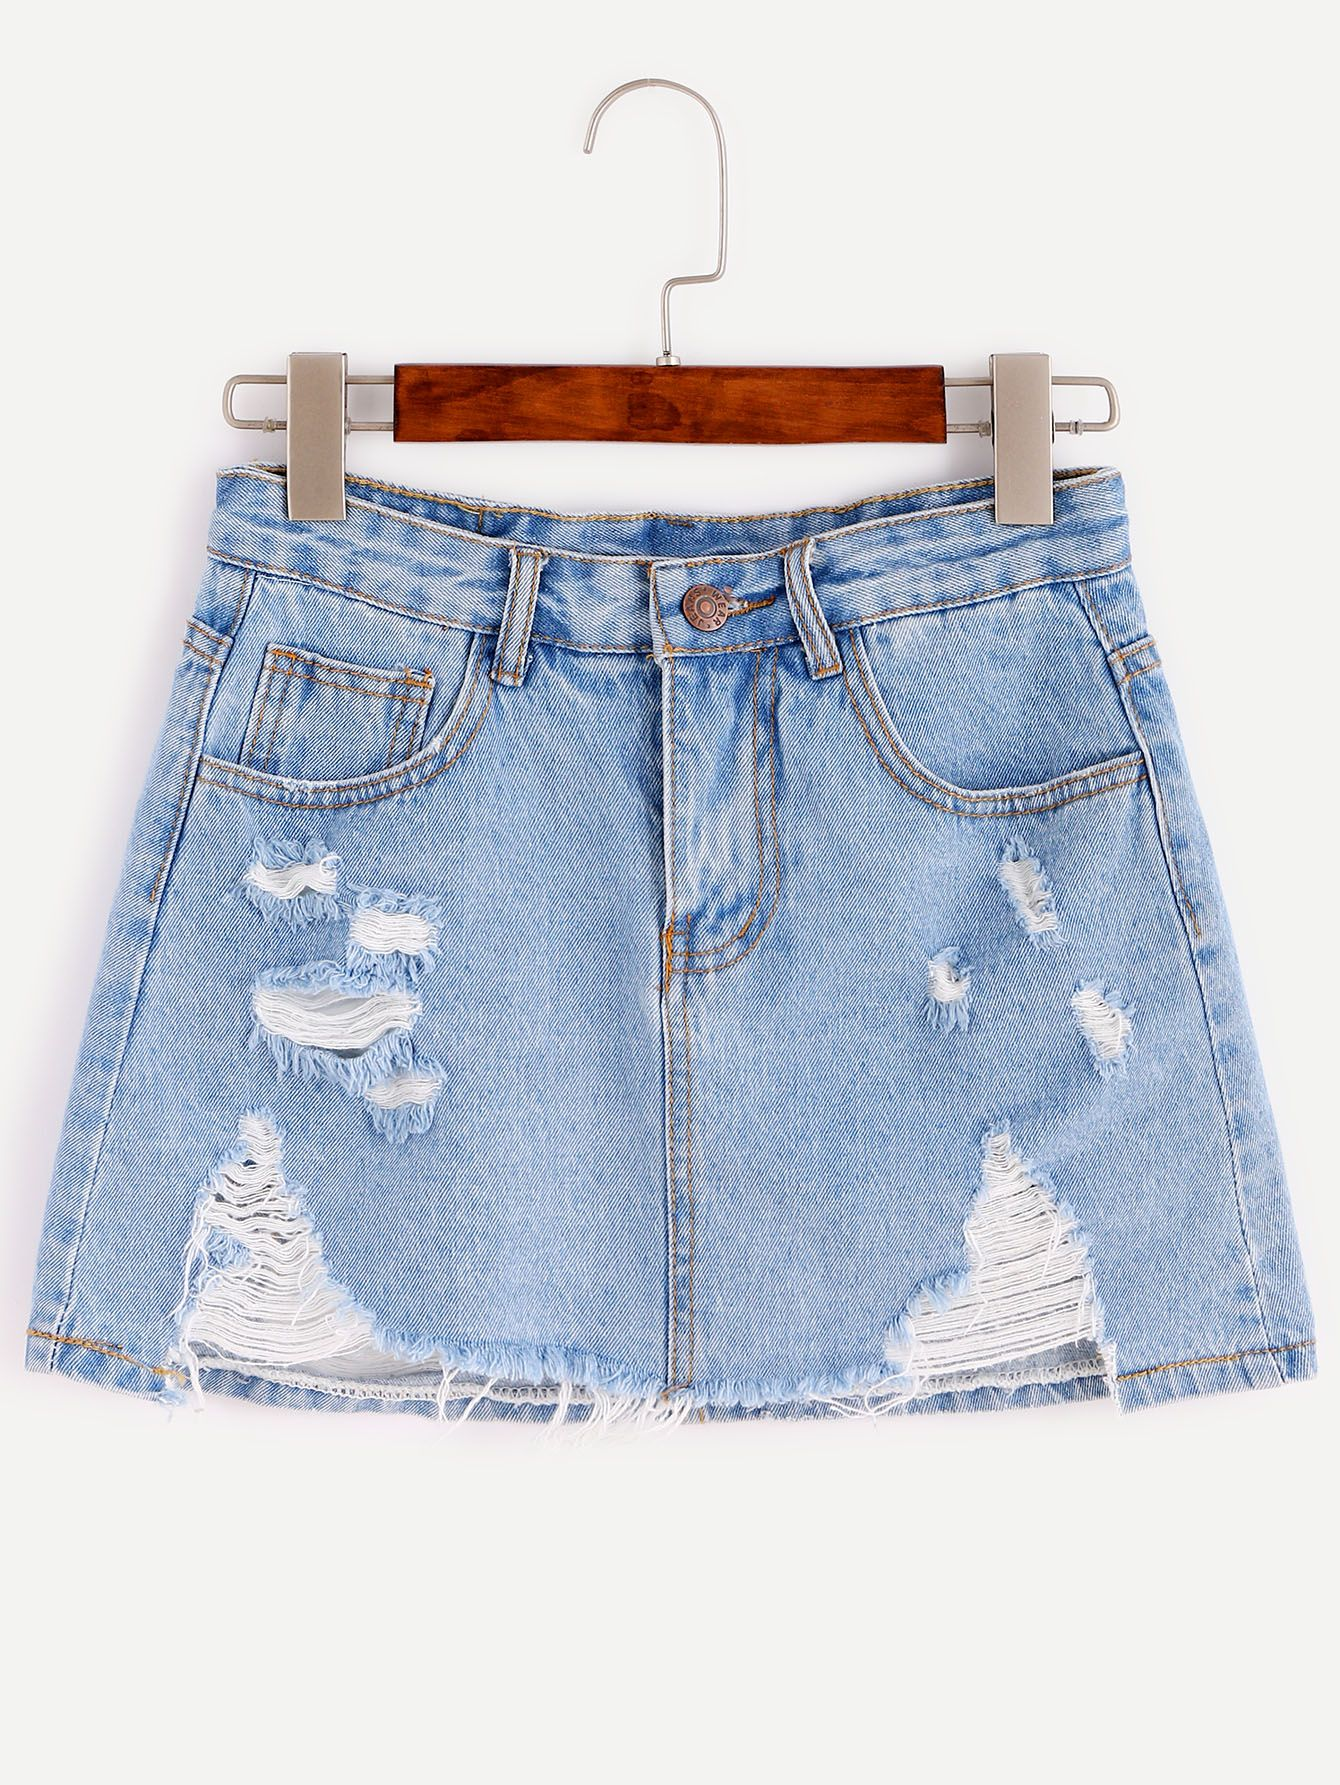 b6a1aa1677 Shop Blue Bleach Wash Distressed Denim Skirt online. SheIn offers Blue Bleach  Wash Distressed Denim Skirt & more to fit your fashionable needs.